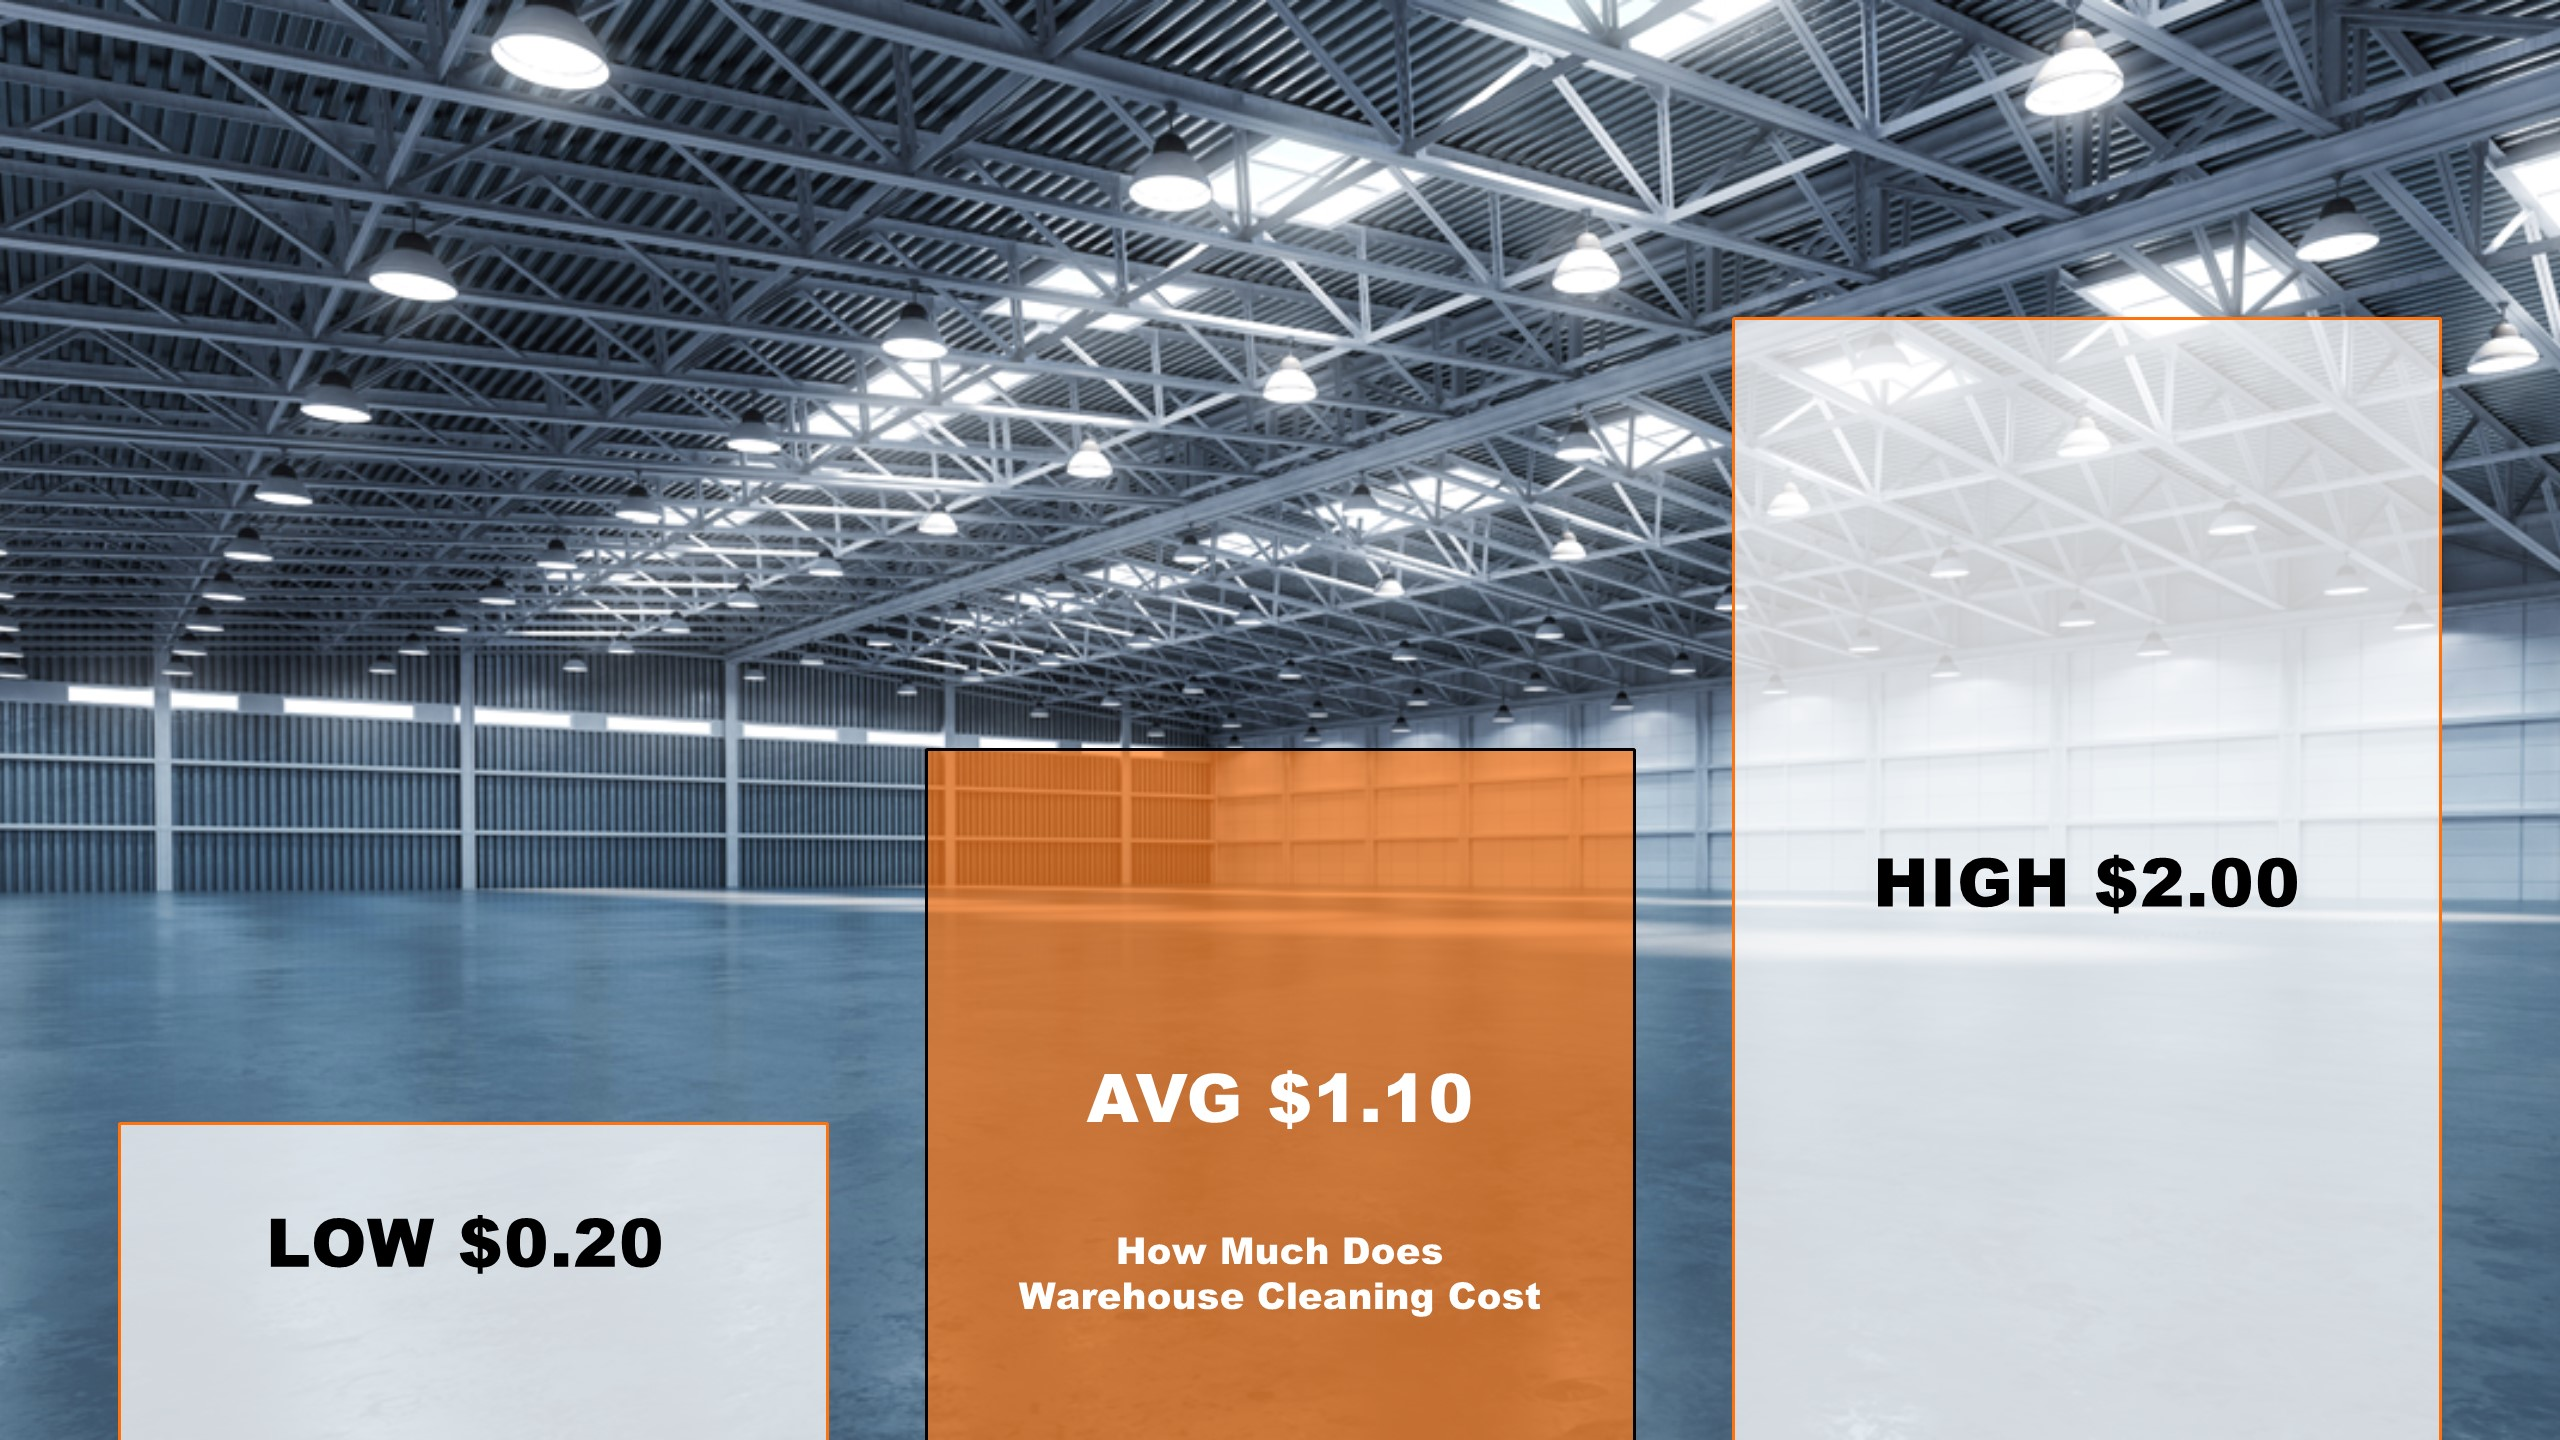 How Much Does Warehouse Cleaning Cost